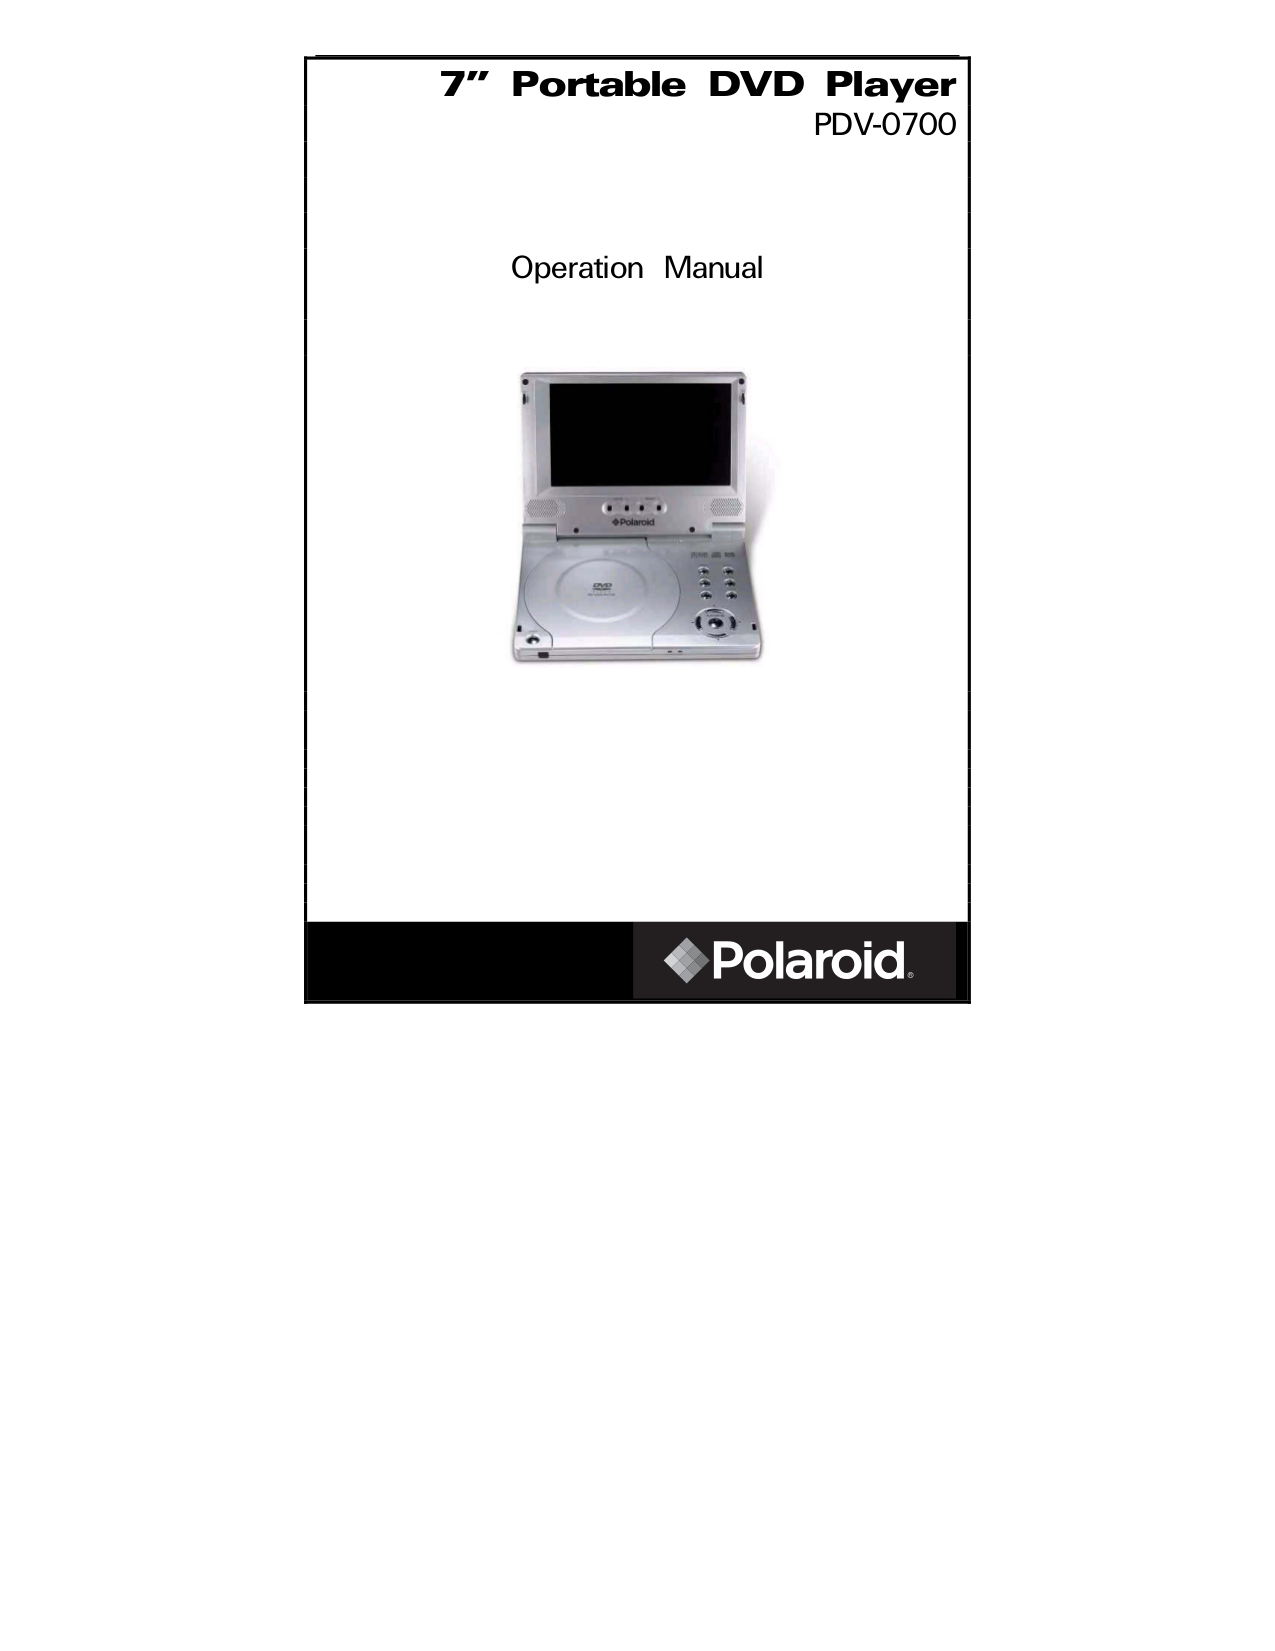 download free pdf for polaroid pdv 0700 portable dvd player manual rh umlib com Polaroid DVD Battery Replacement RCA Portable DVD Player